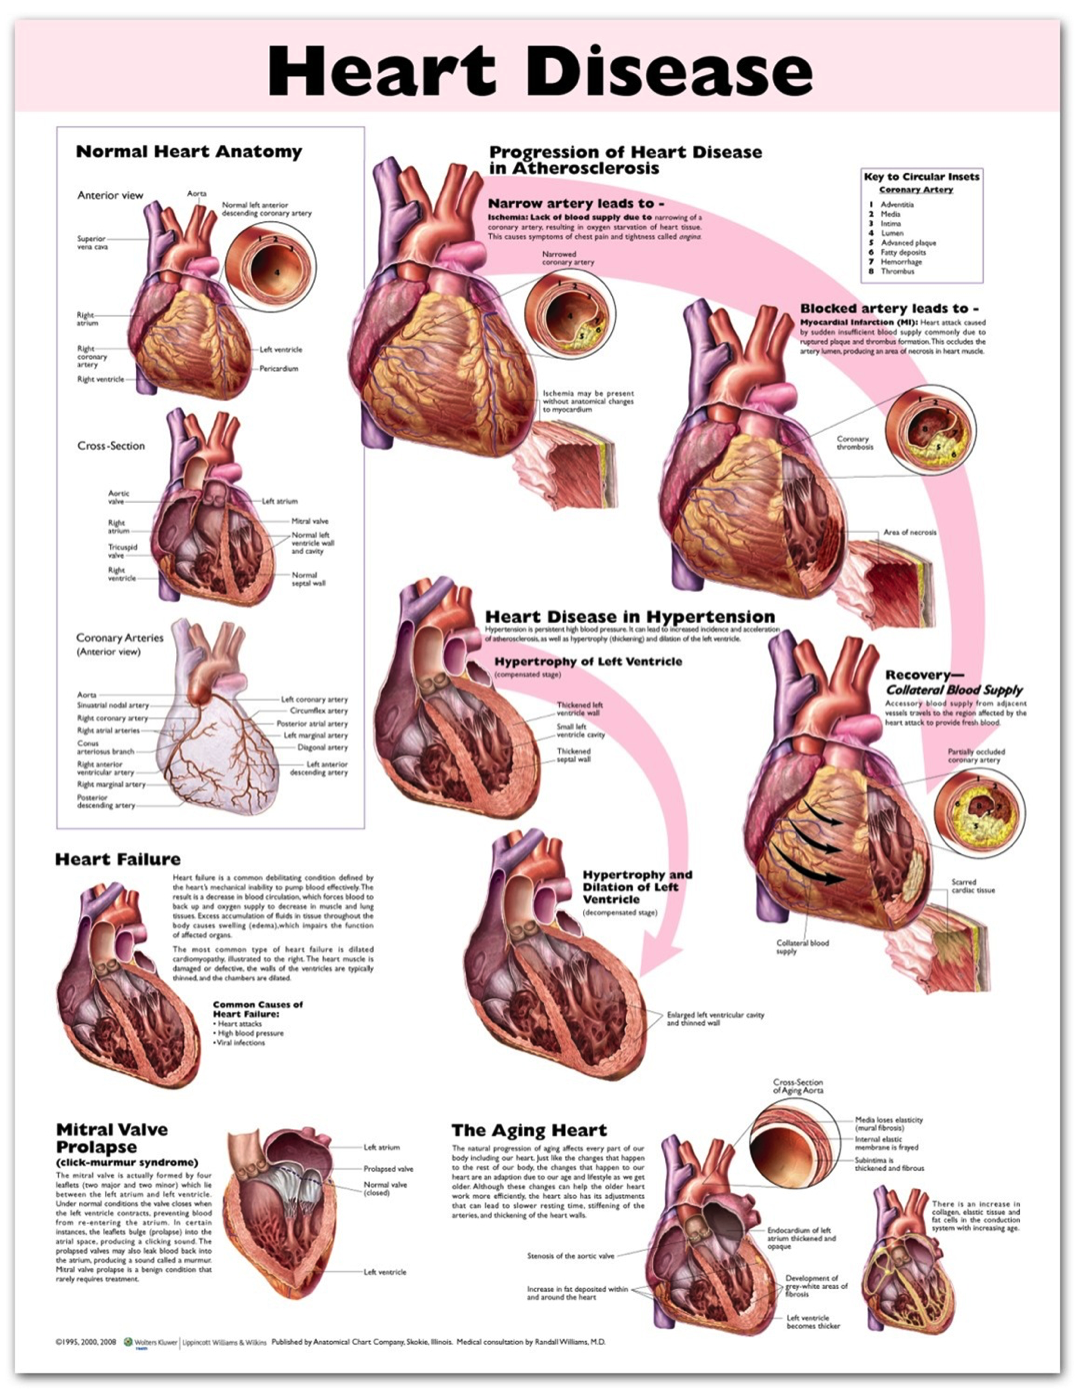 poster showing anatomic illustrations of the heart to show heart disease's effects